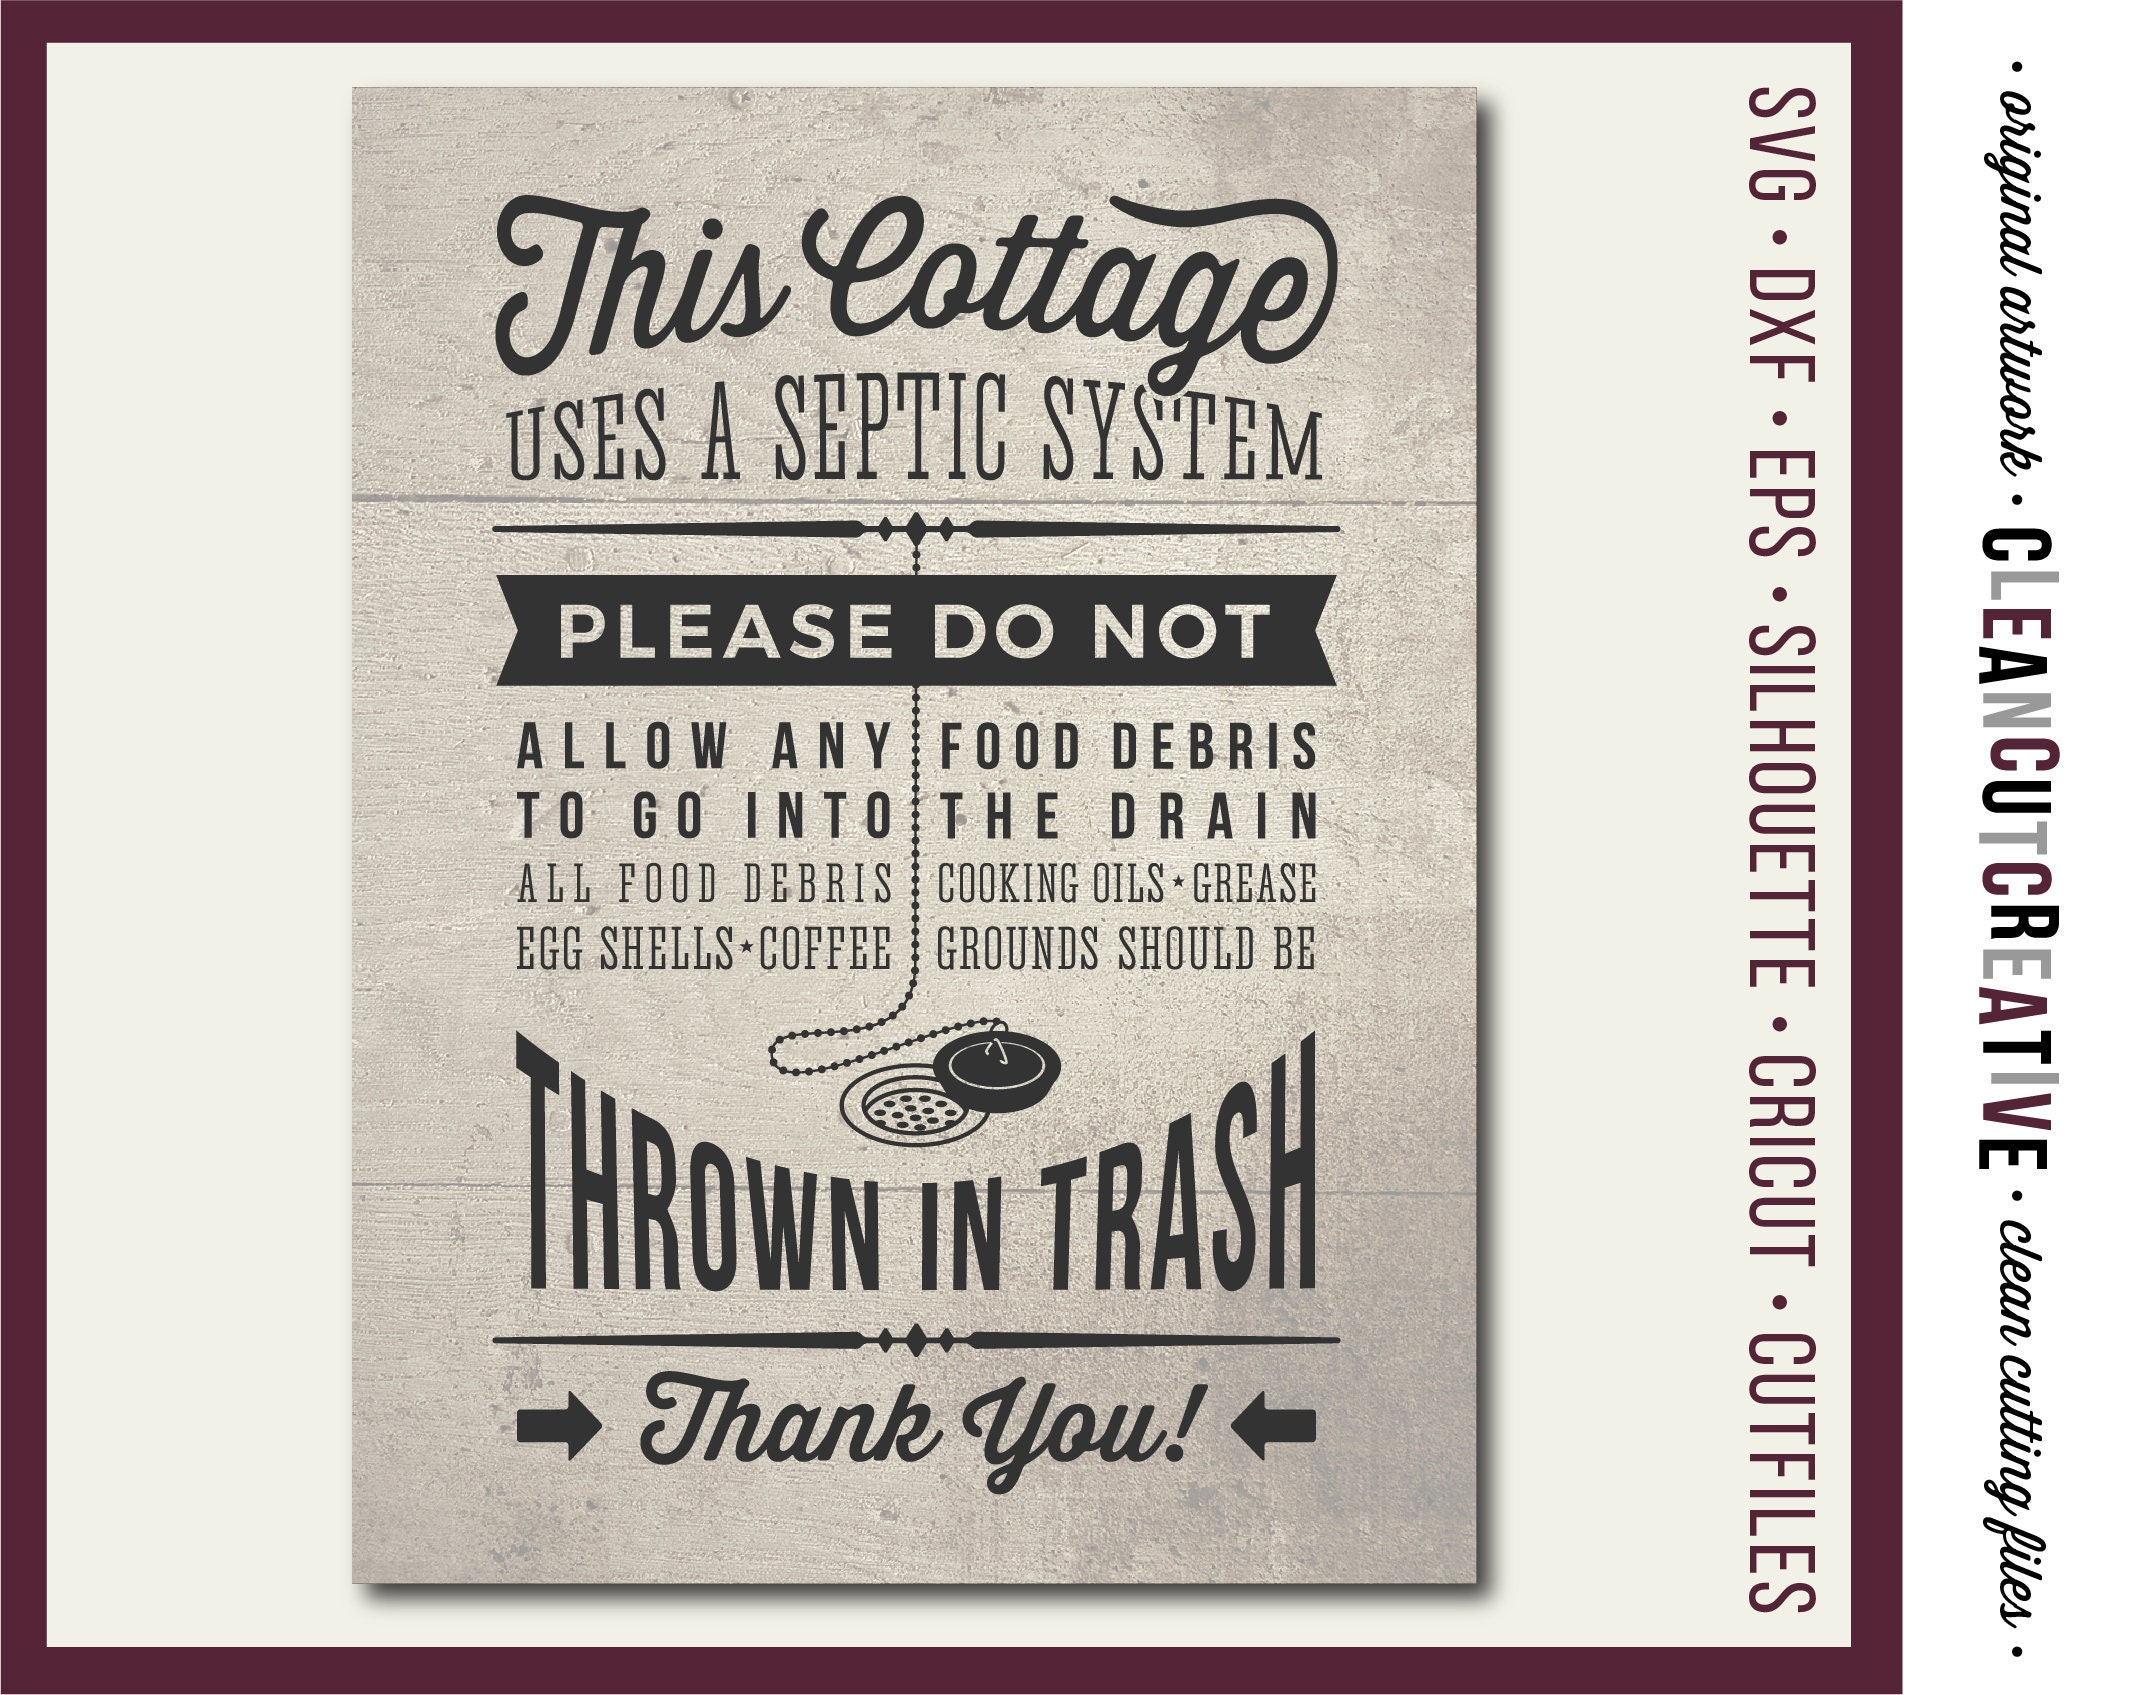 fc7aa647742f2 SVG Cottage Kitchen Sign Septic System svg kitchen rules septic  retro/vintage wood sign svg file design Cricut & Silhouette cutting file